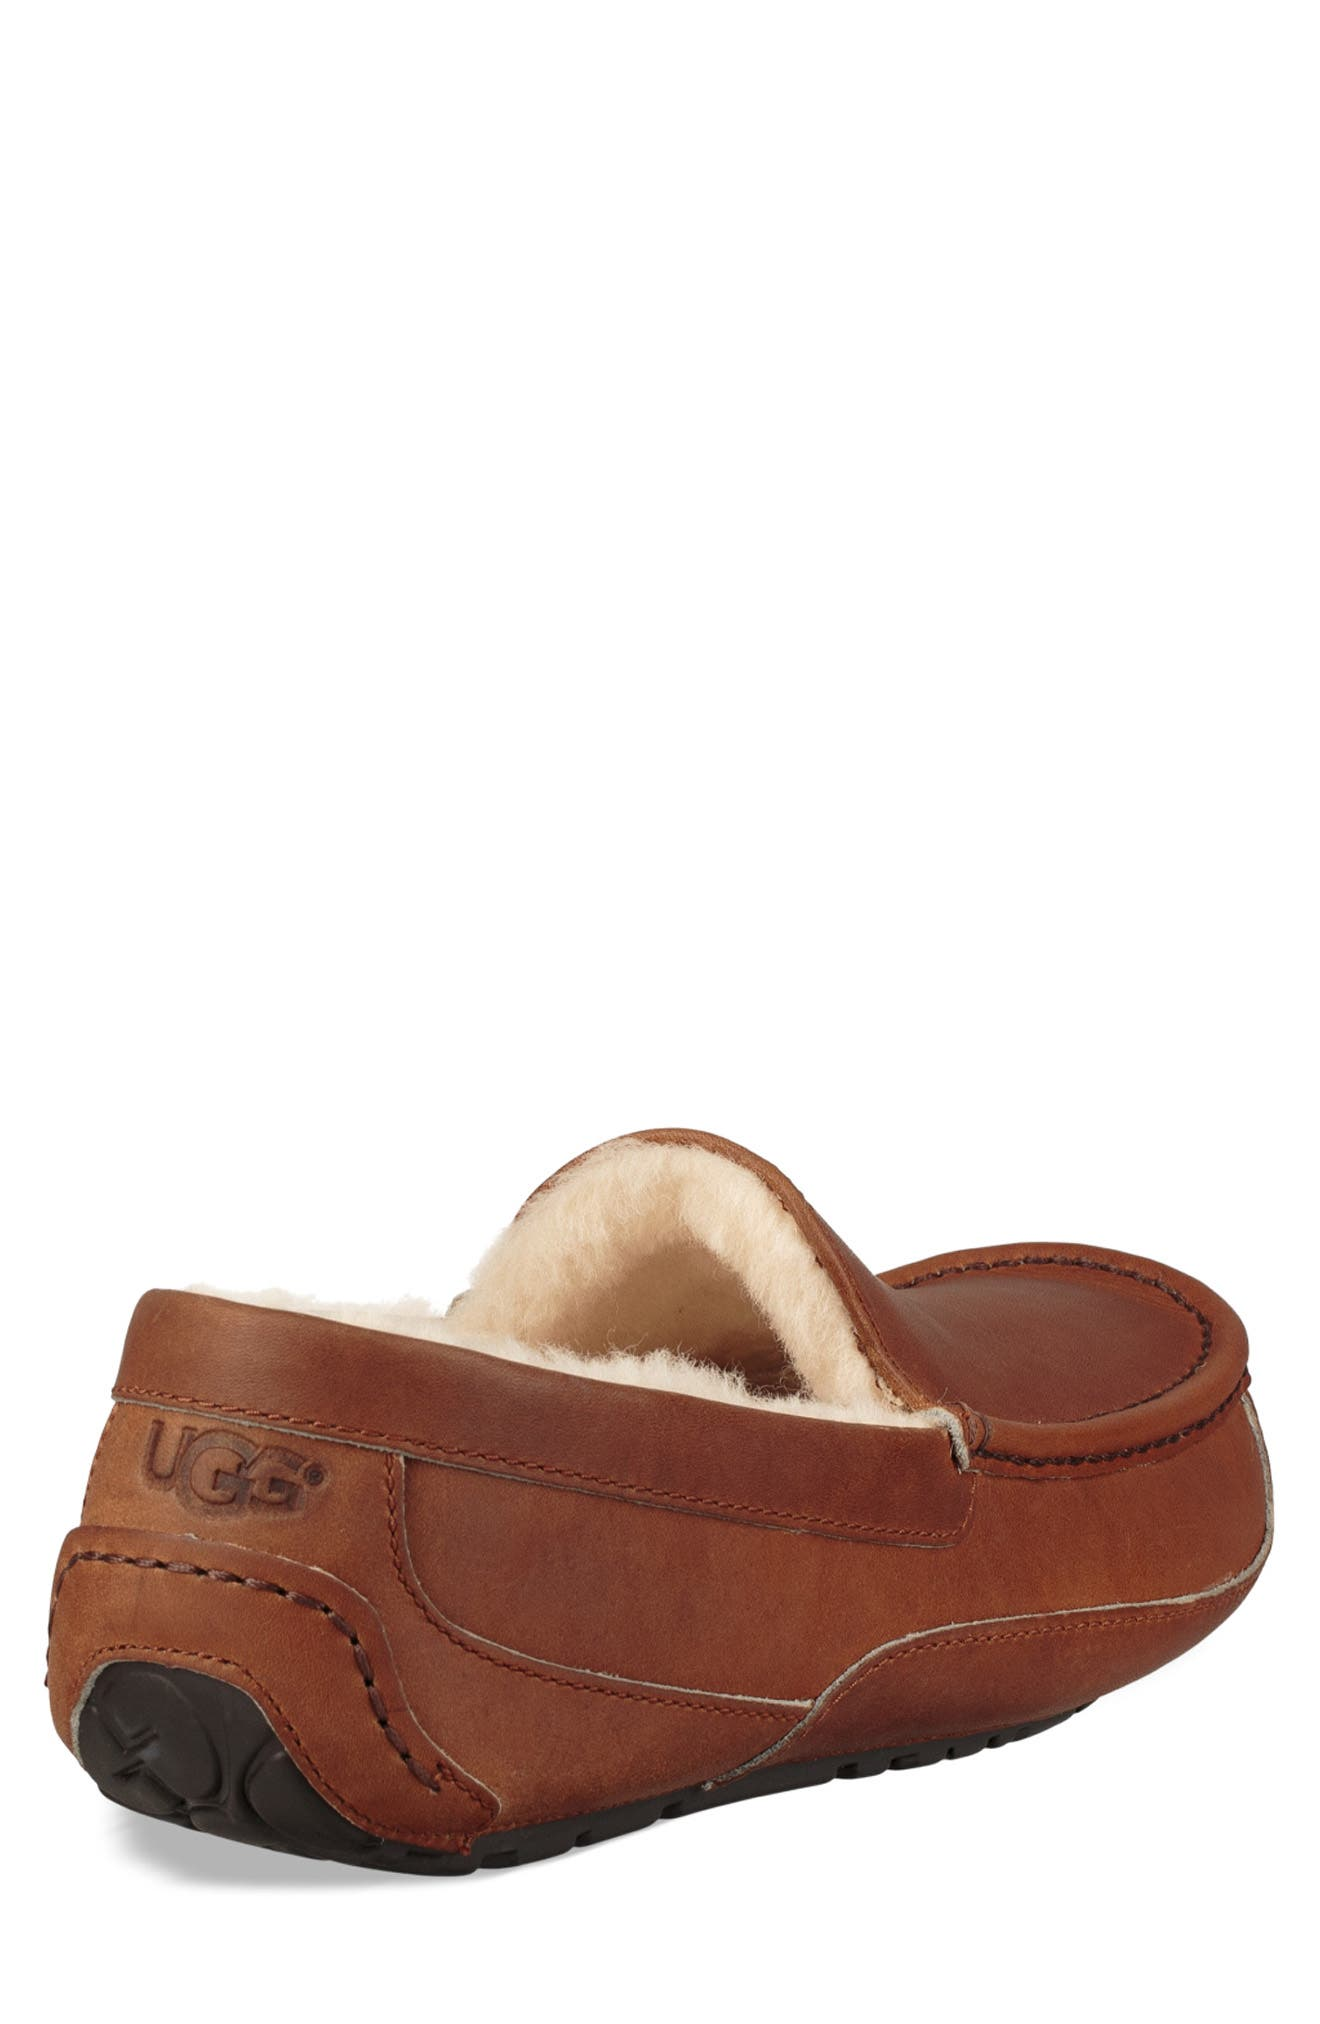 Ascot Pinnacle Slipper,                             Alternate thumbnail 2, color,                             202